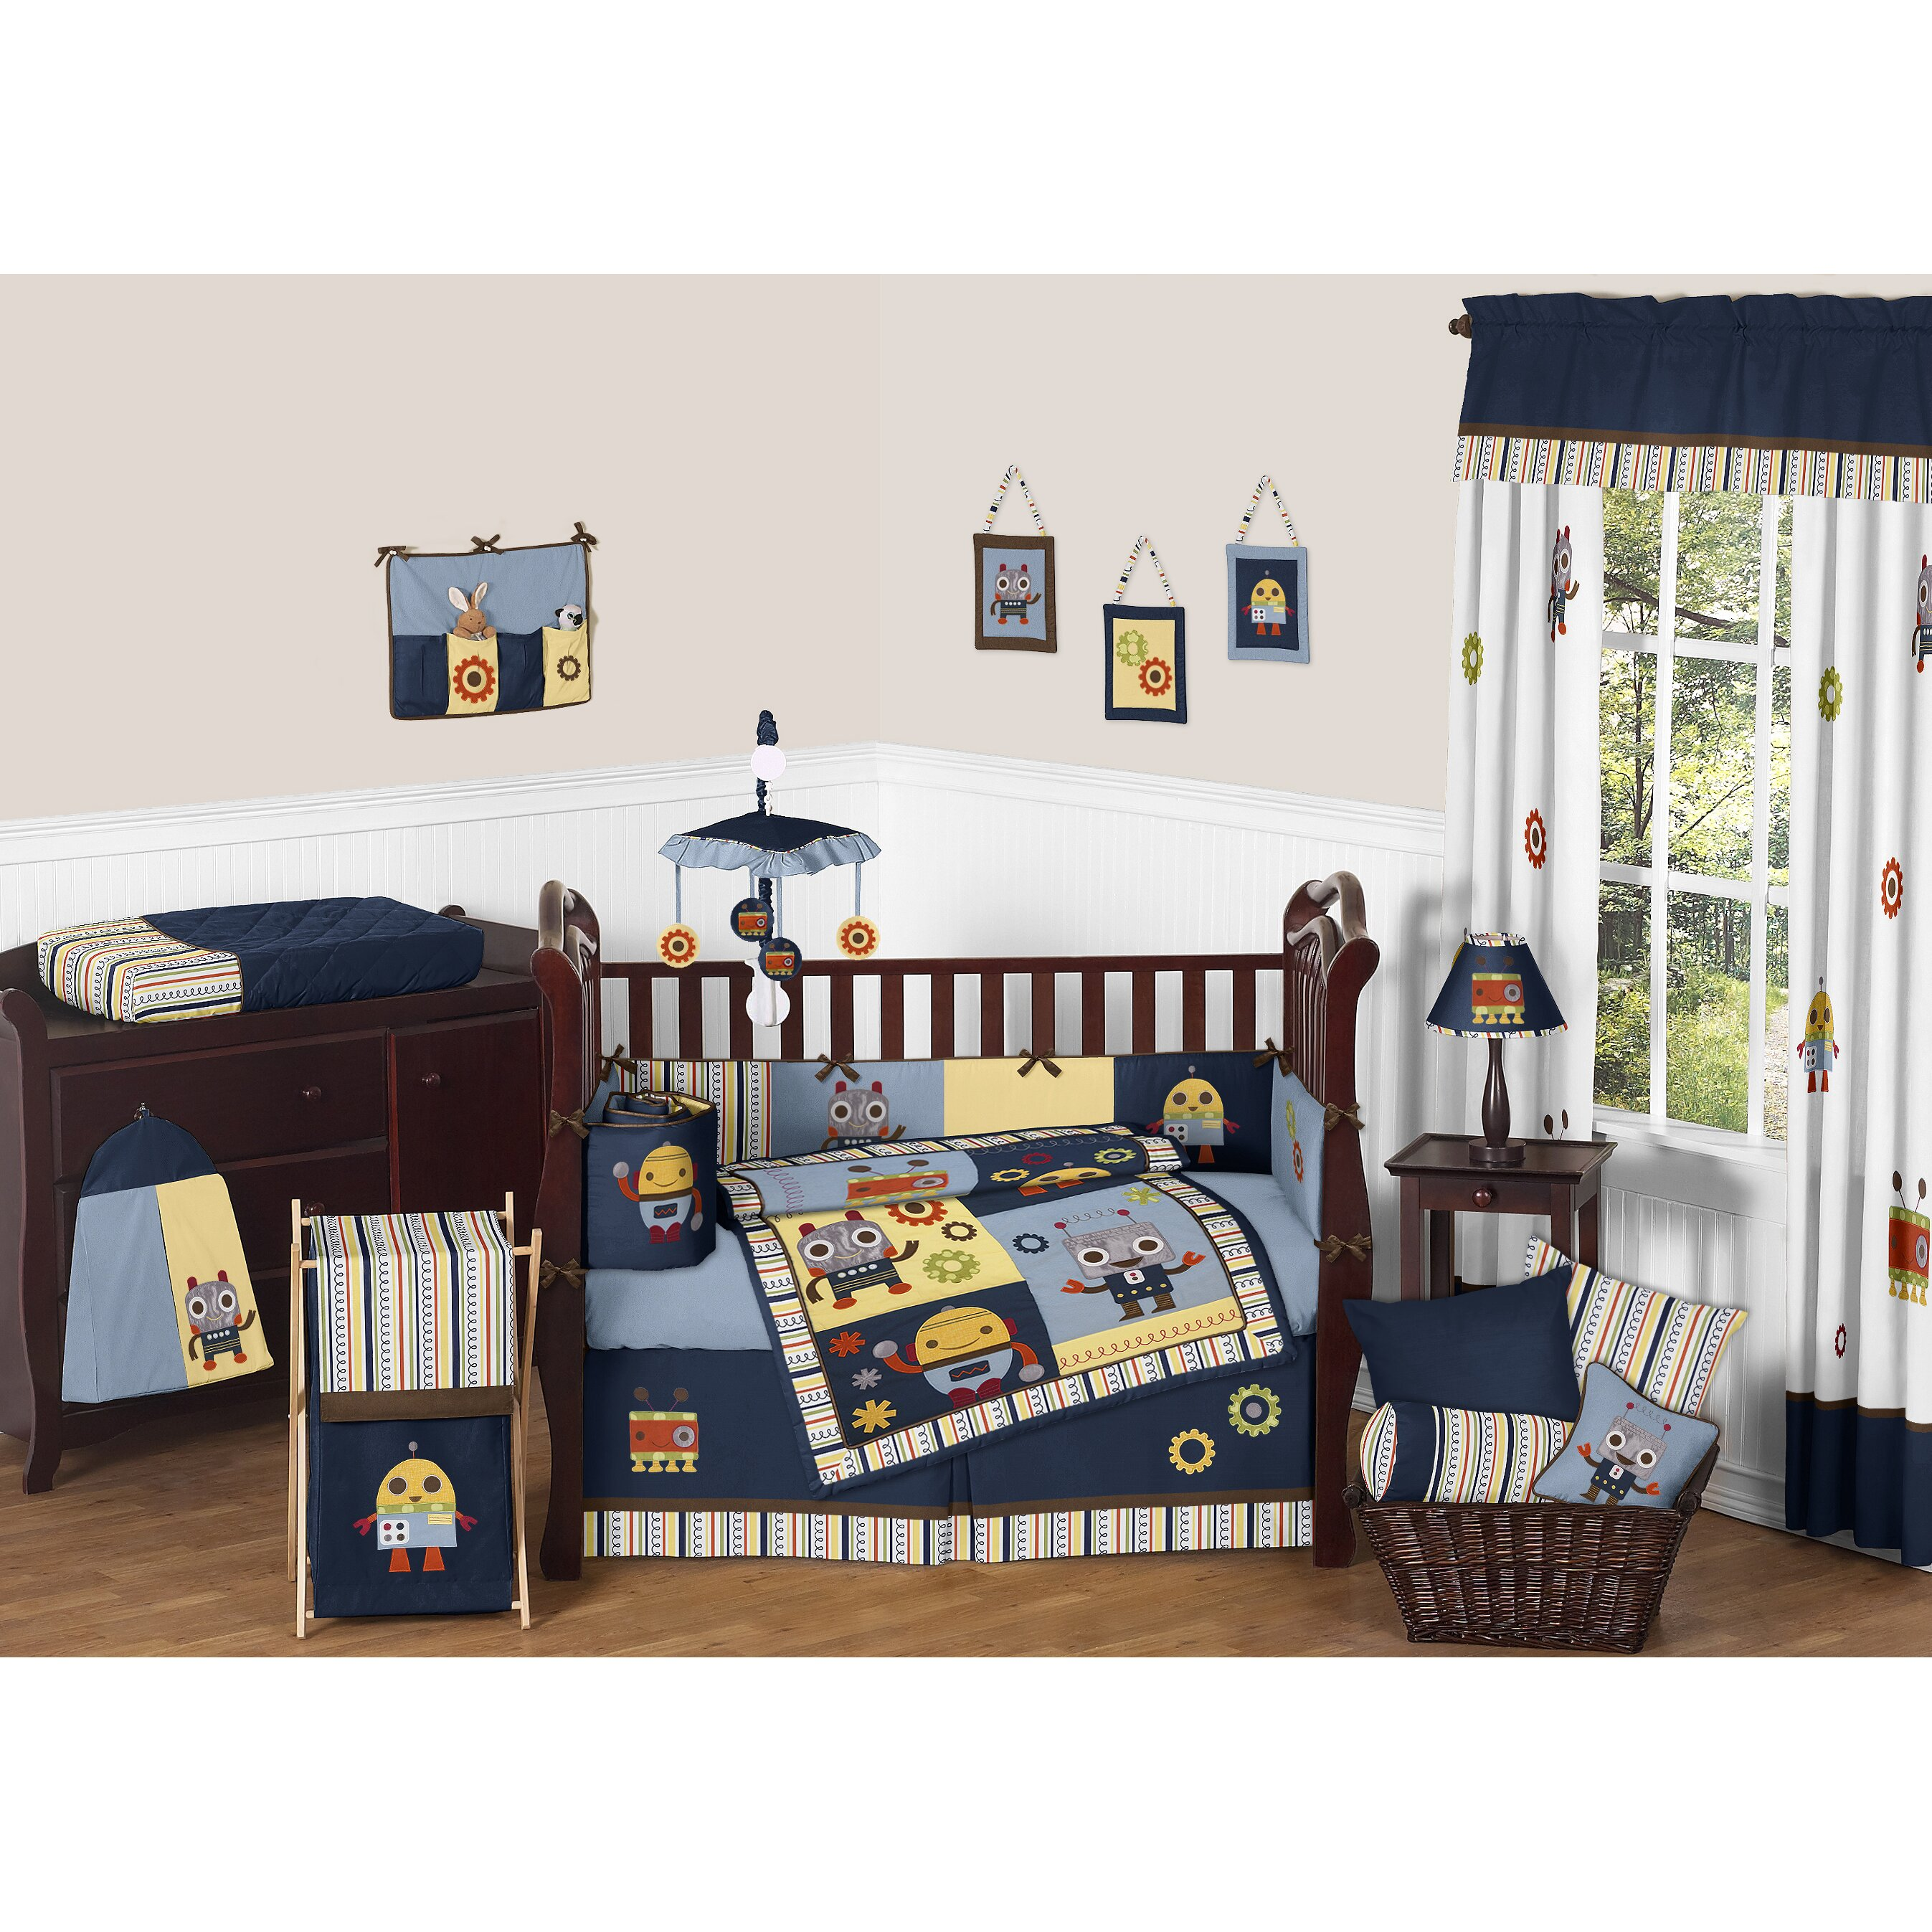 grey chevron boys cribs sets how to nursery baby rooms crib sweet the boy and design make your carousel size yellow word designs girl room cus spread turquoise purple ter full set jojo bedding bedroom about skylar teal gray of elephant ideas loversiq pink